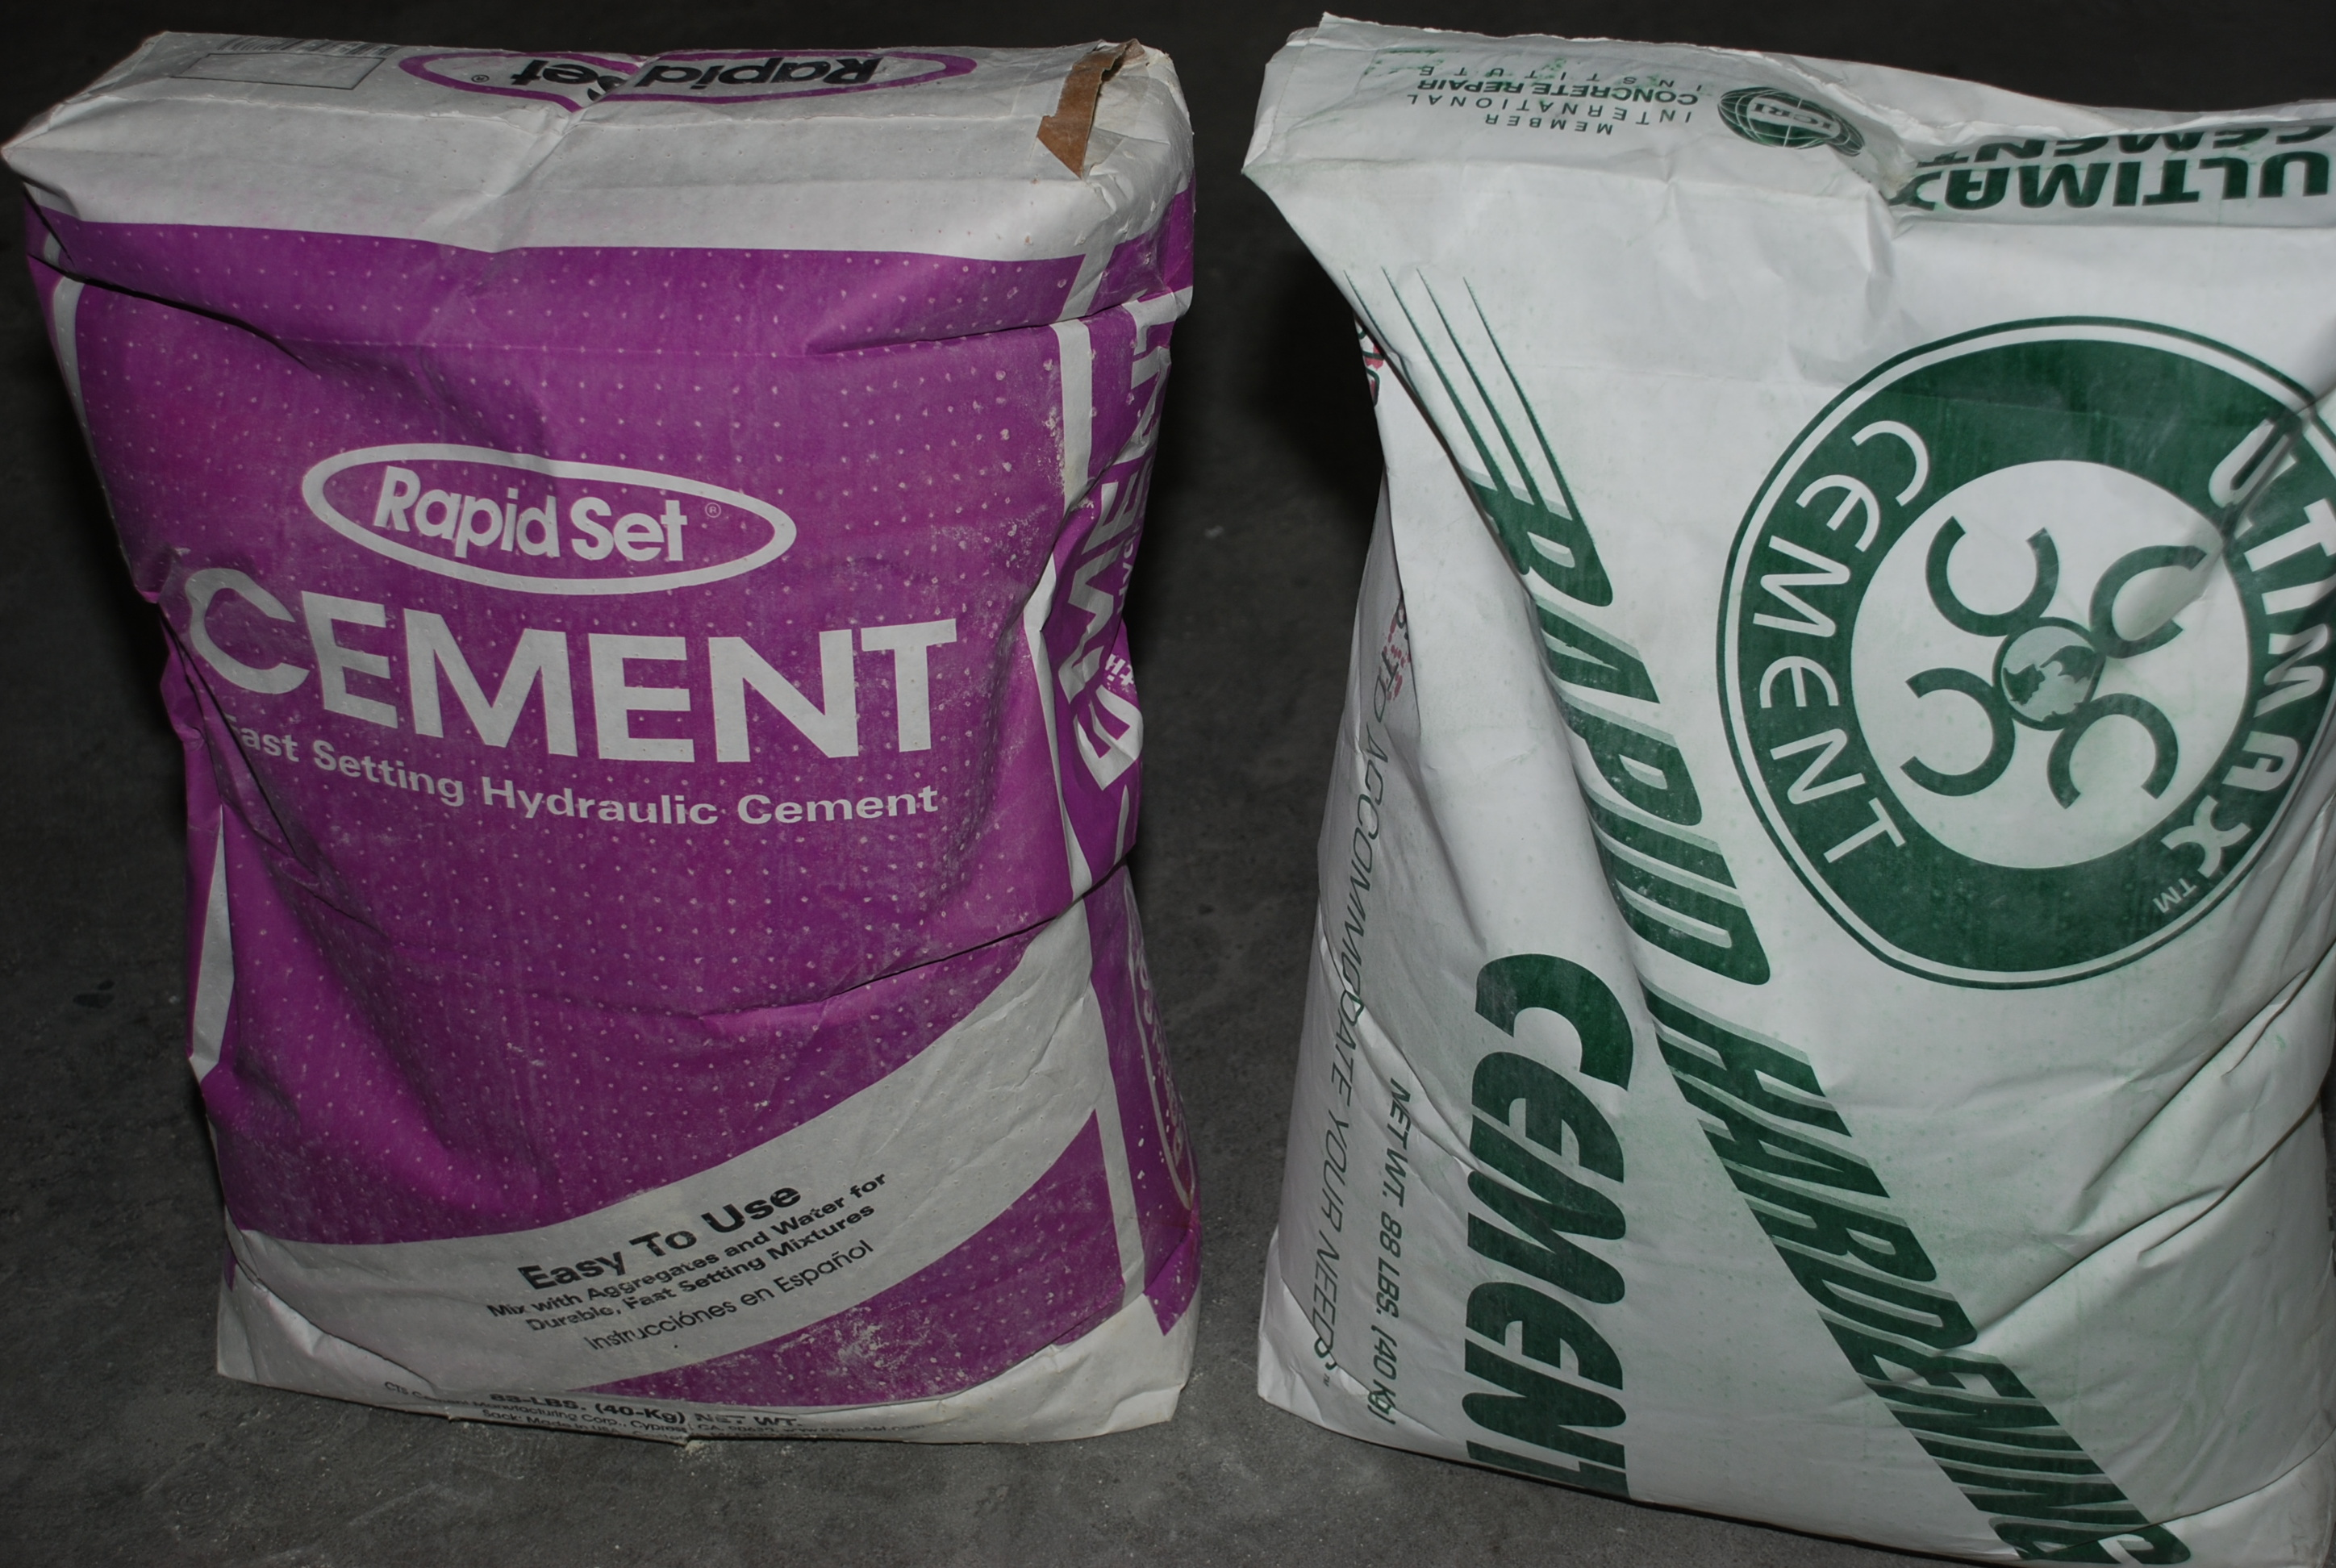 Rapid Set and Ultimax CSA cement products